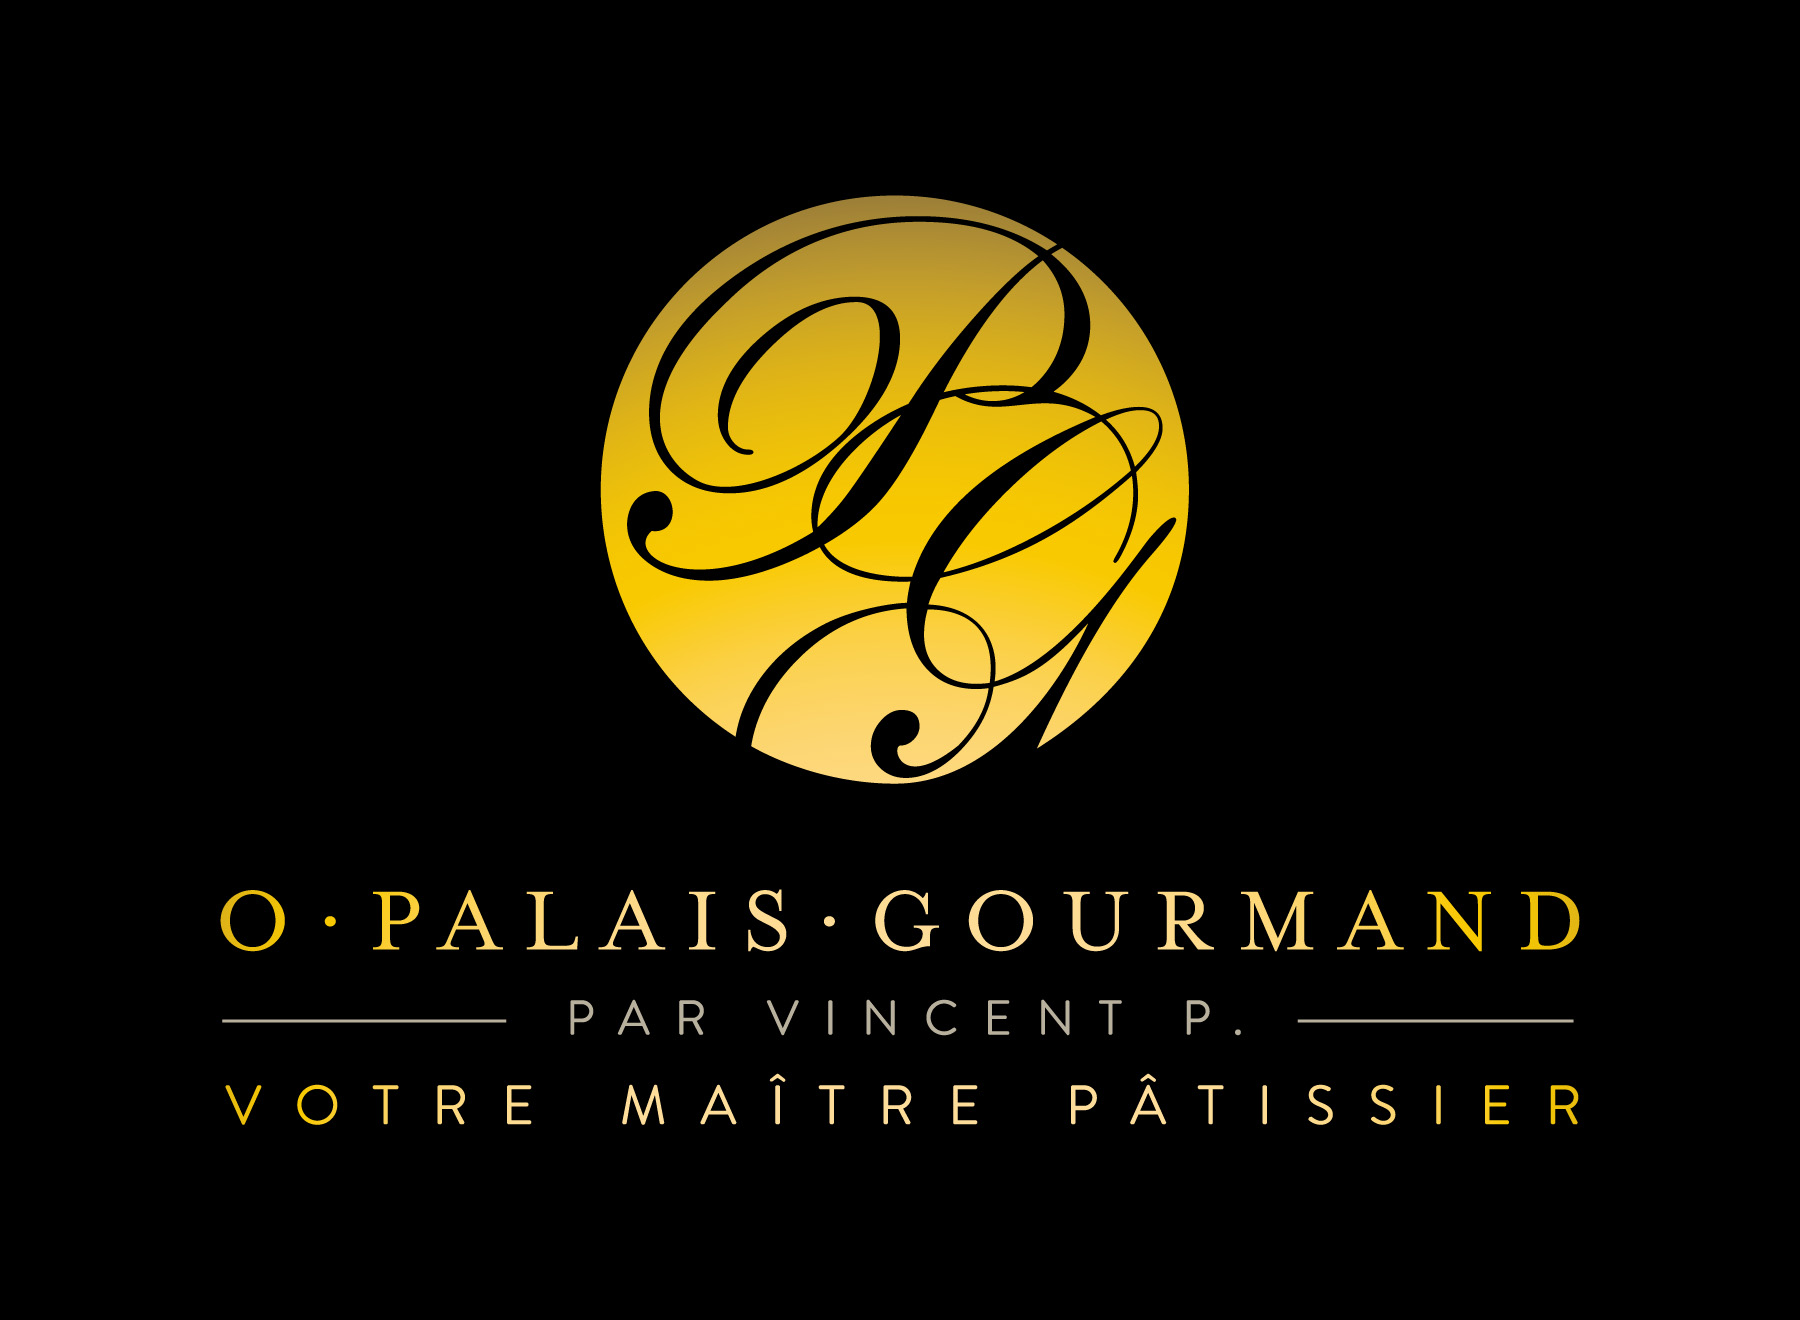 O palais Gourmand inc.